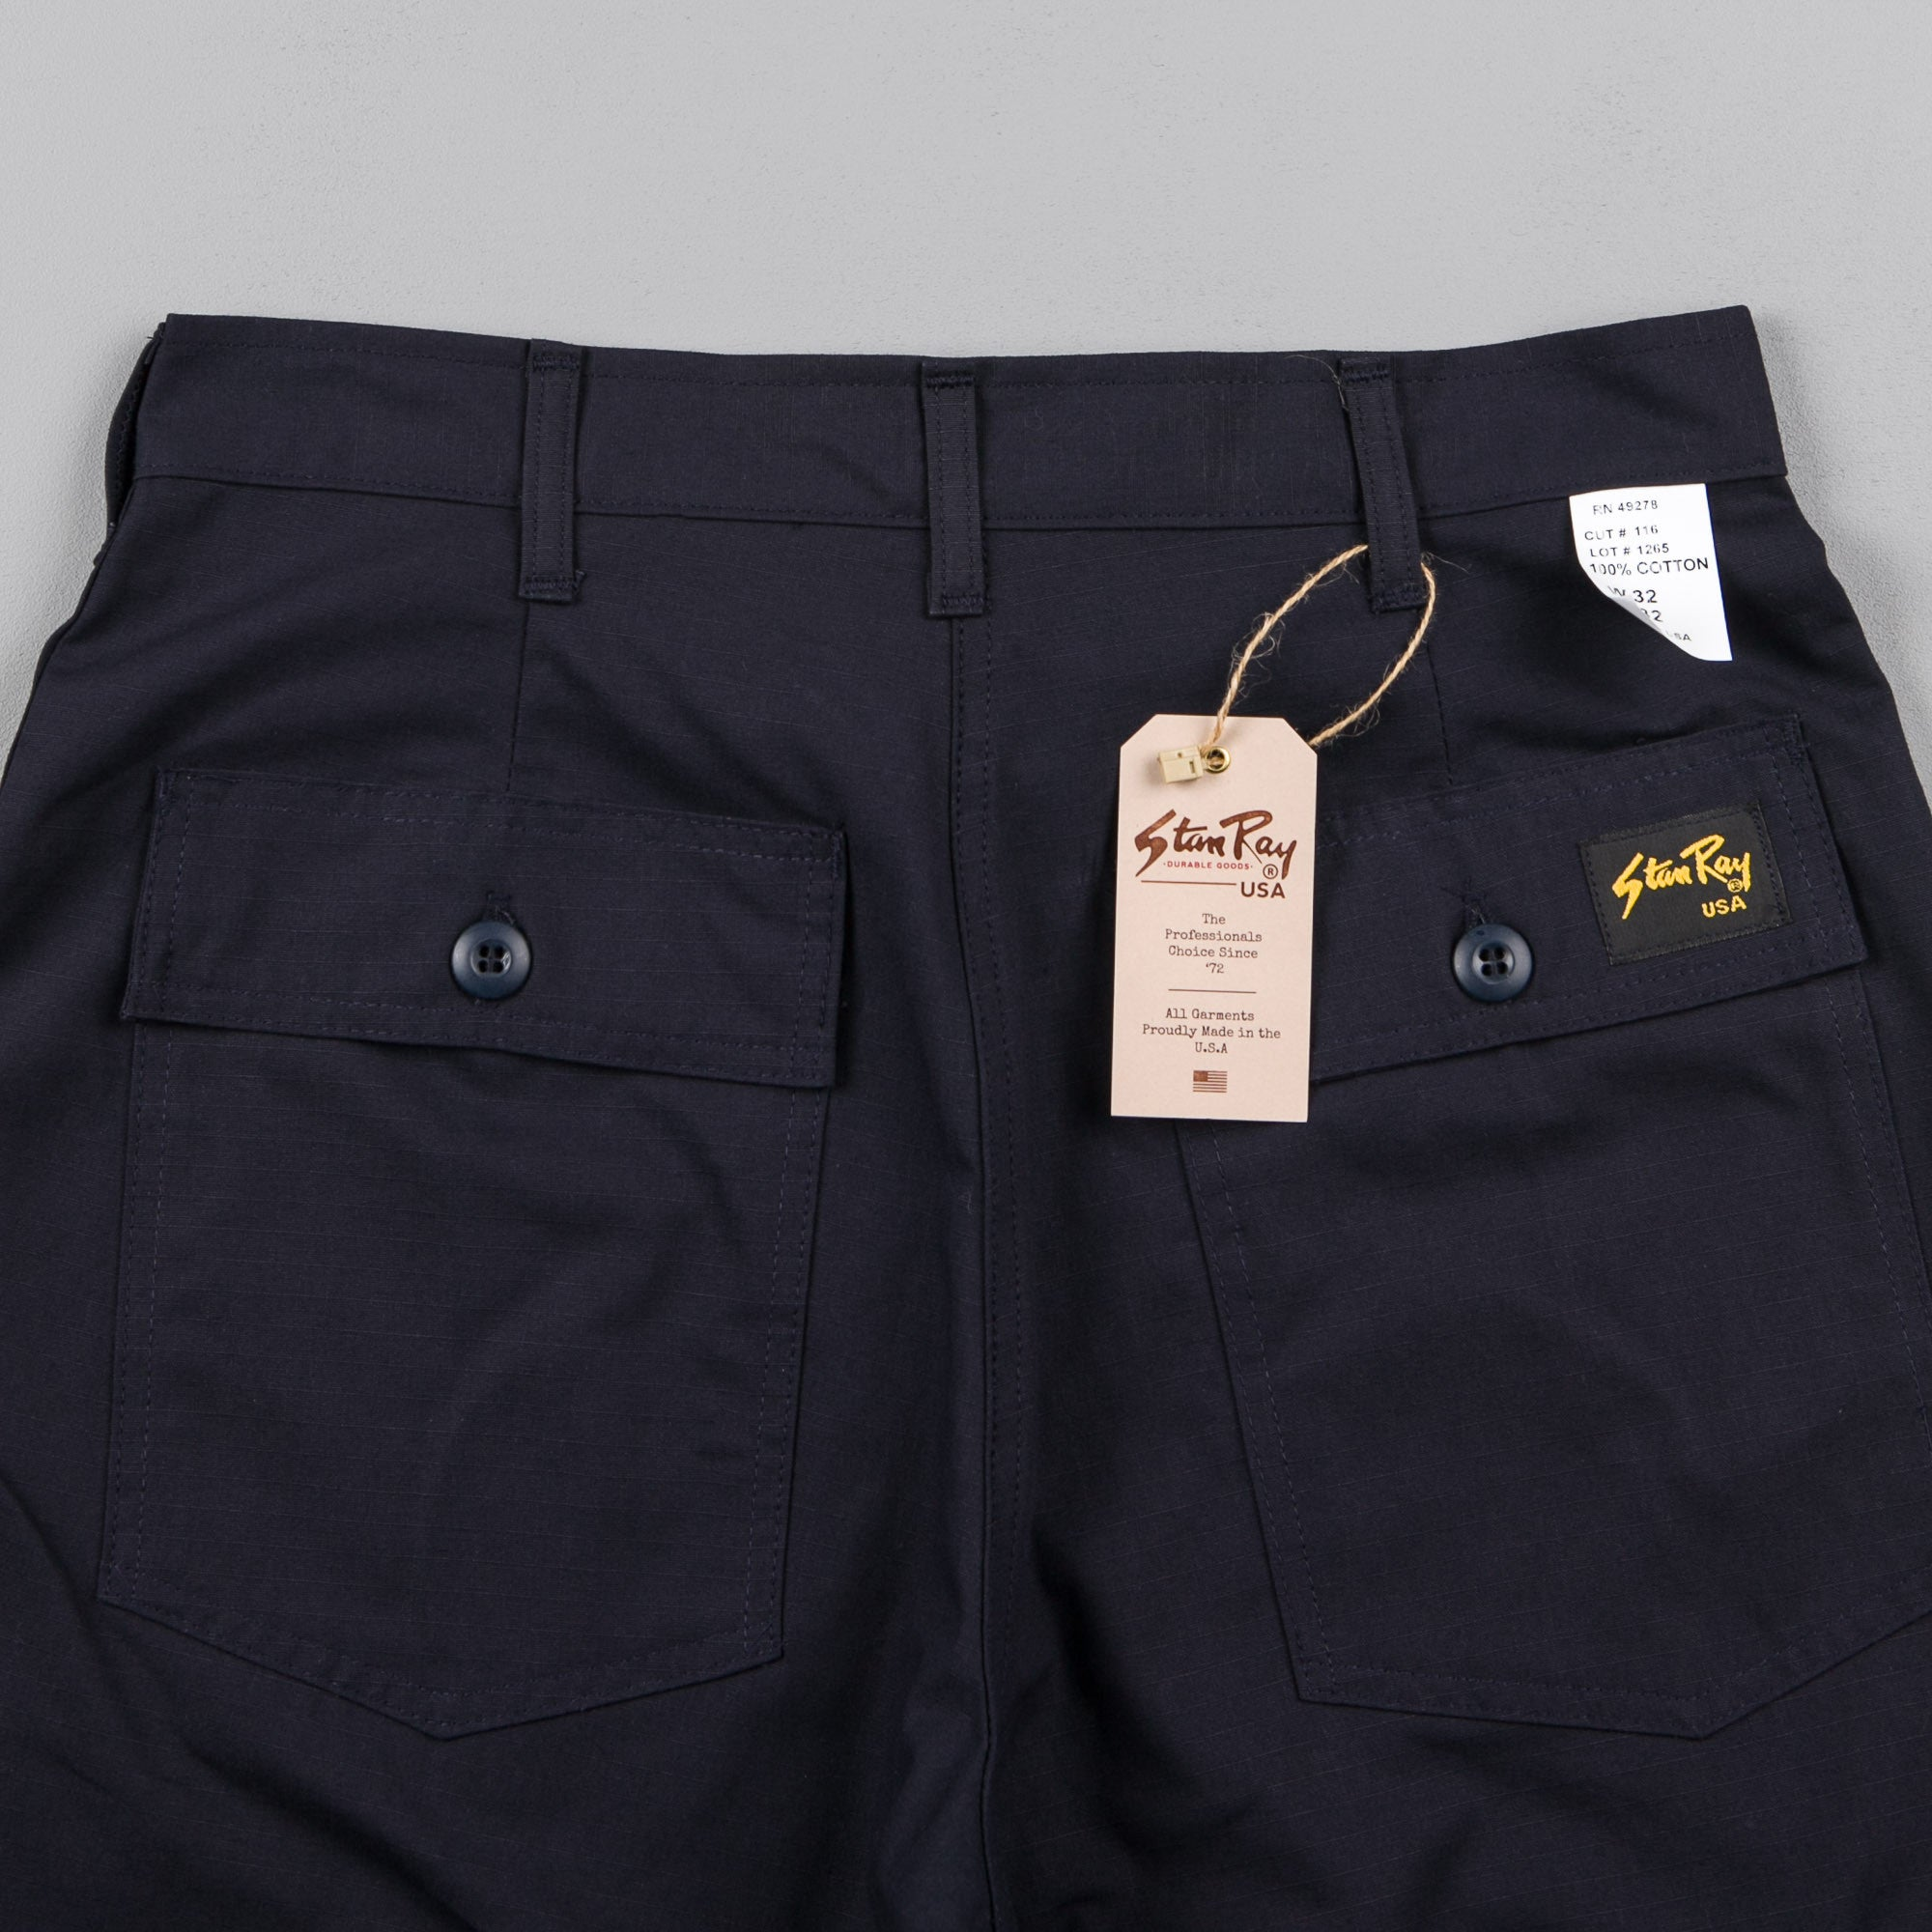 Stan Ray Taper Fit 4 Pocket Fatigue Trousers - Navy Rip Stop